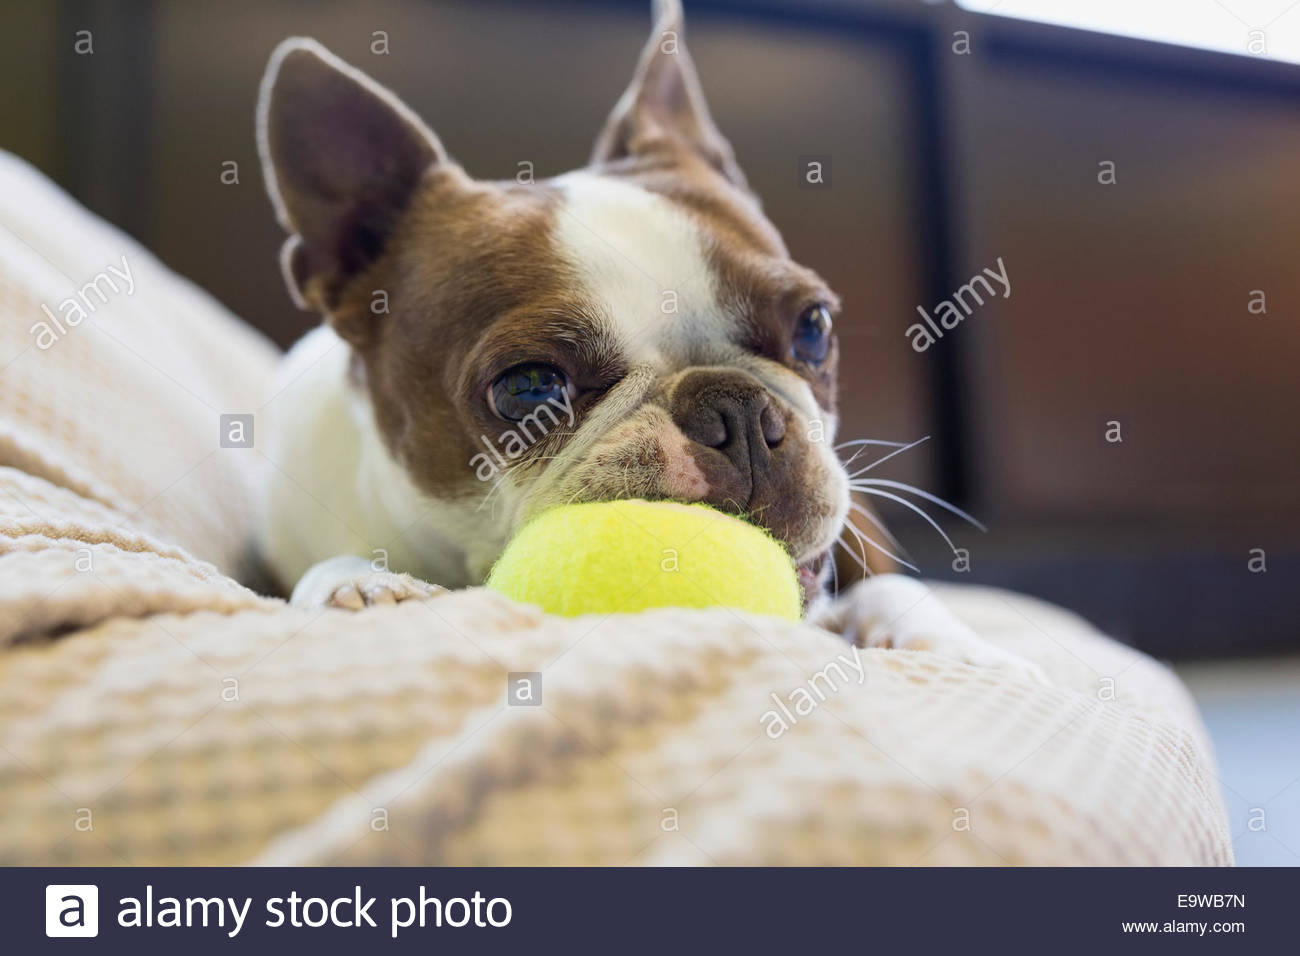 Boston Terrier de mâcher de la balle de tennis Photo Stock